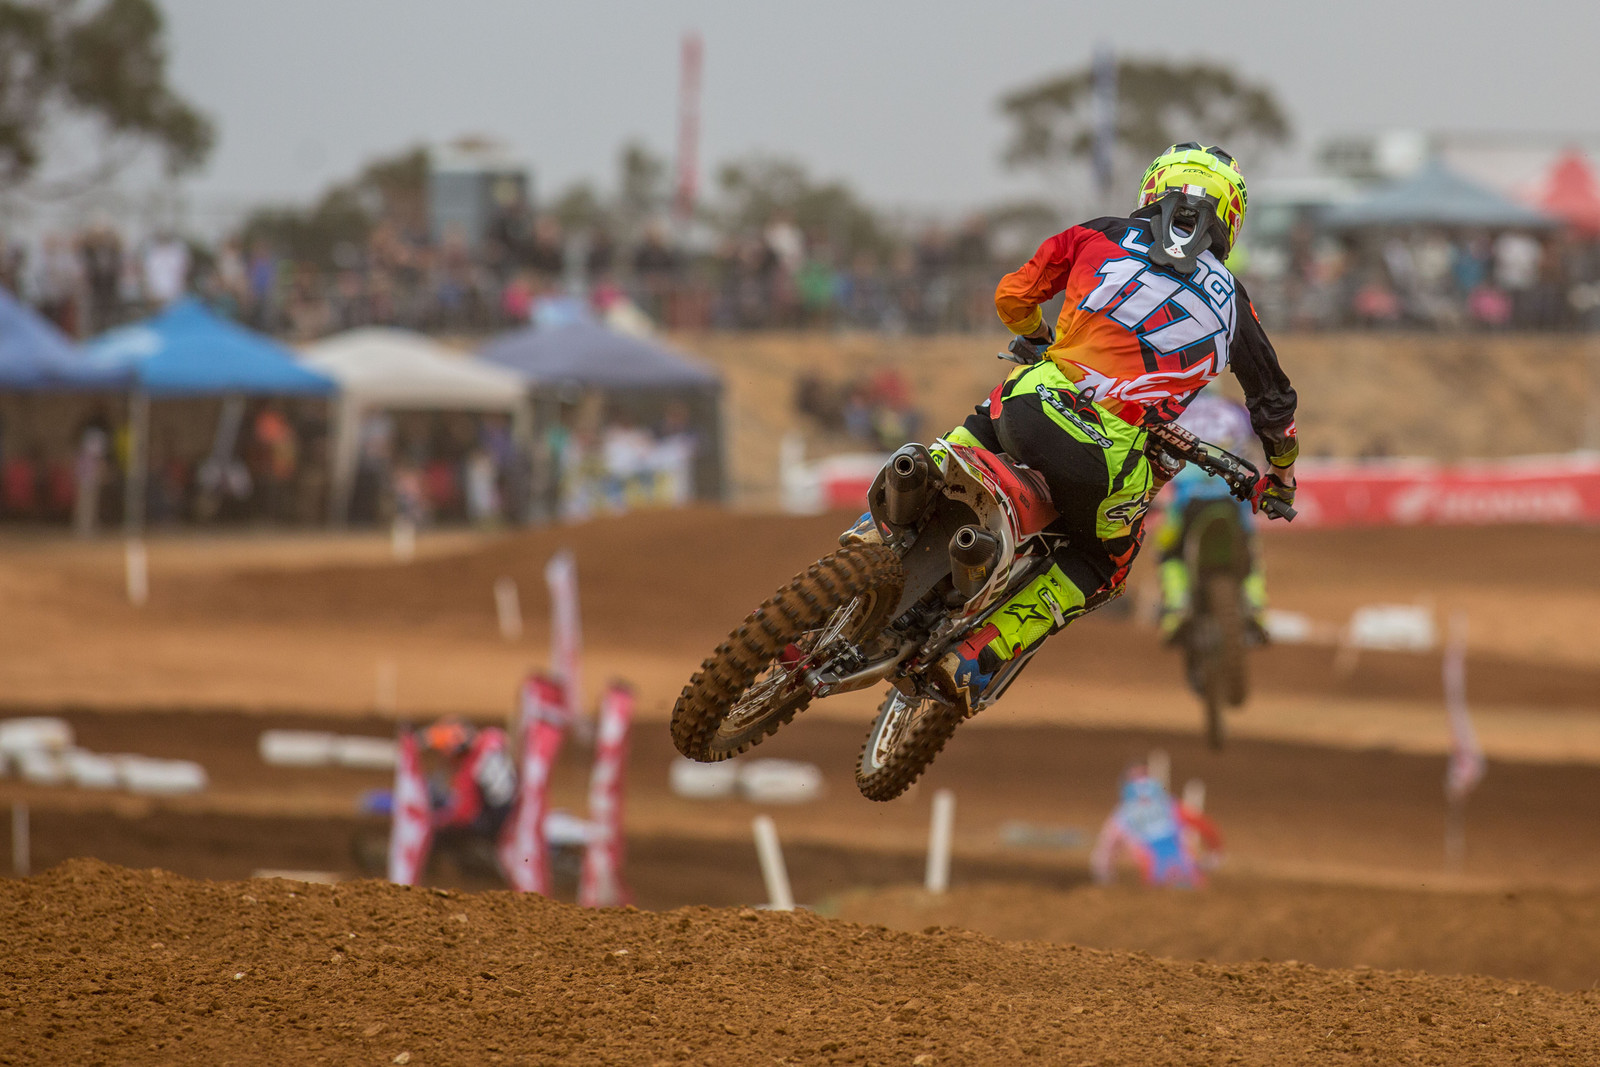 Dylan Long - Australian Motul Mx Championships: Round 4, Murray Bridge - Motocross Pictures - Vital MX